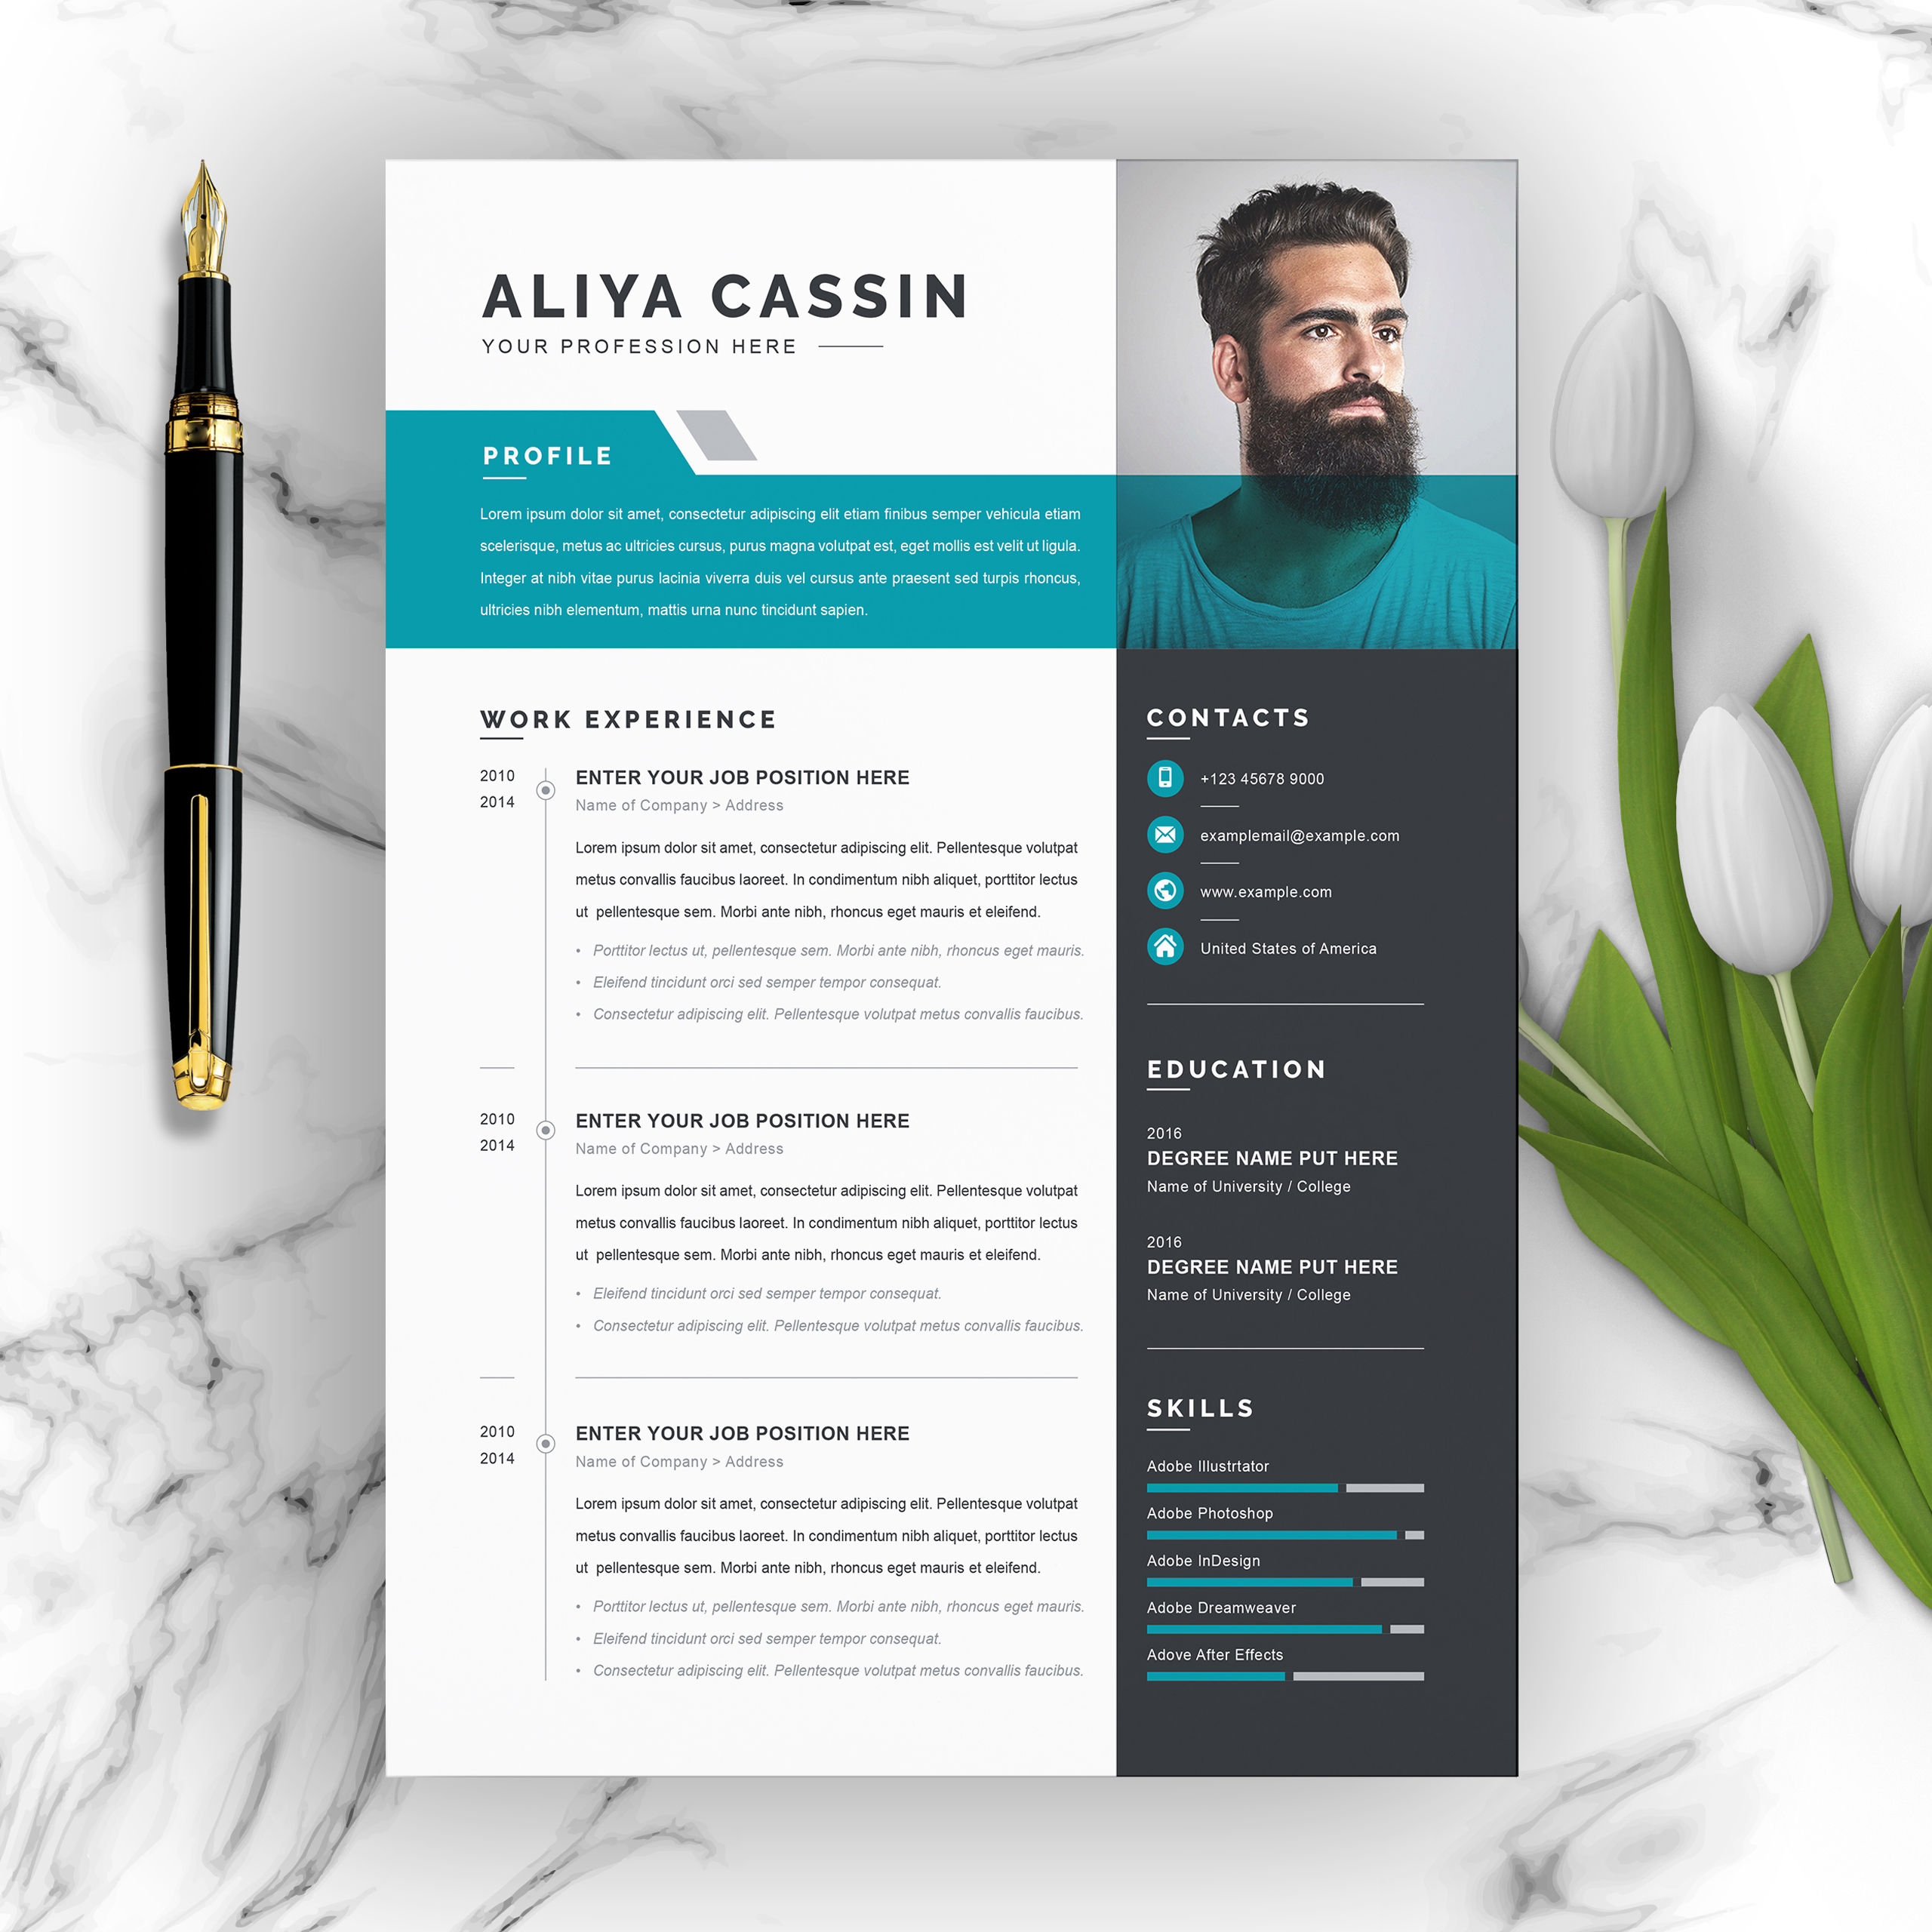 Blue, Grey and White Resume Template With Photo and Transparency